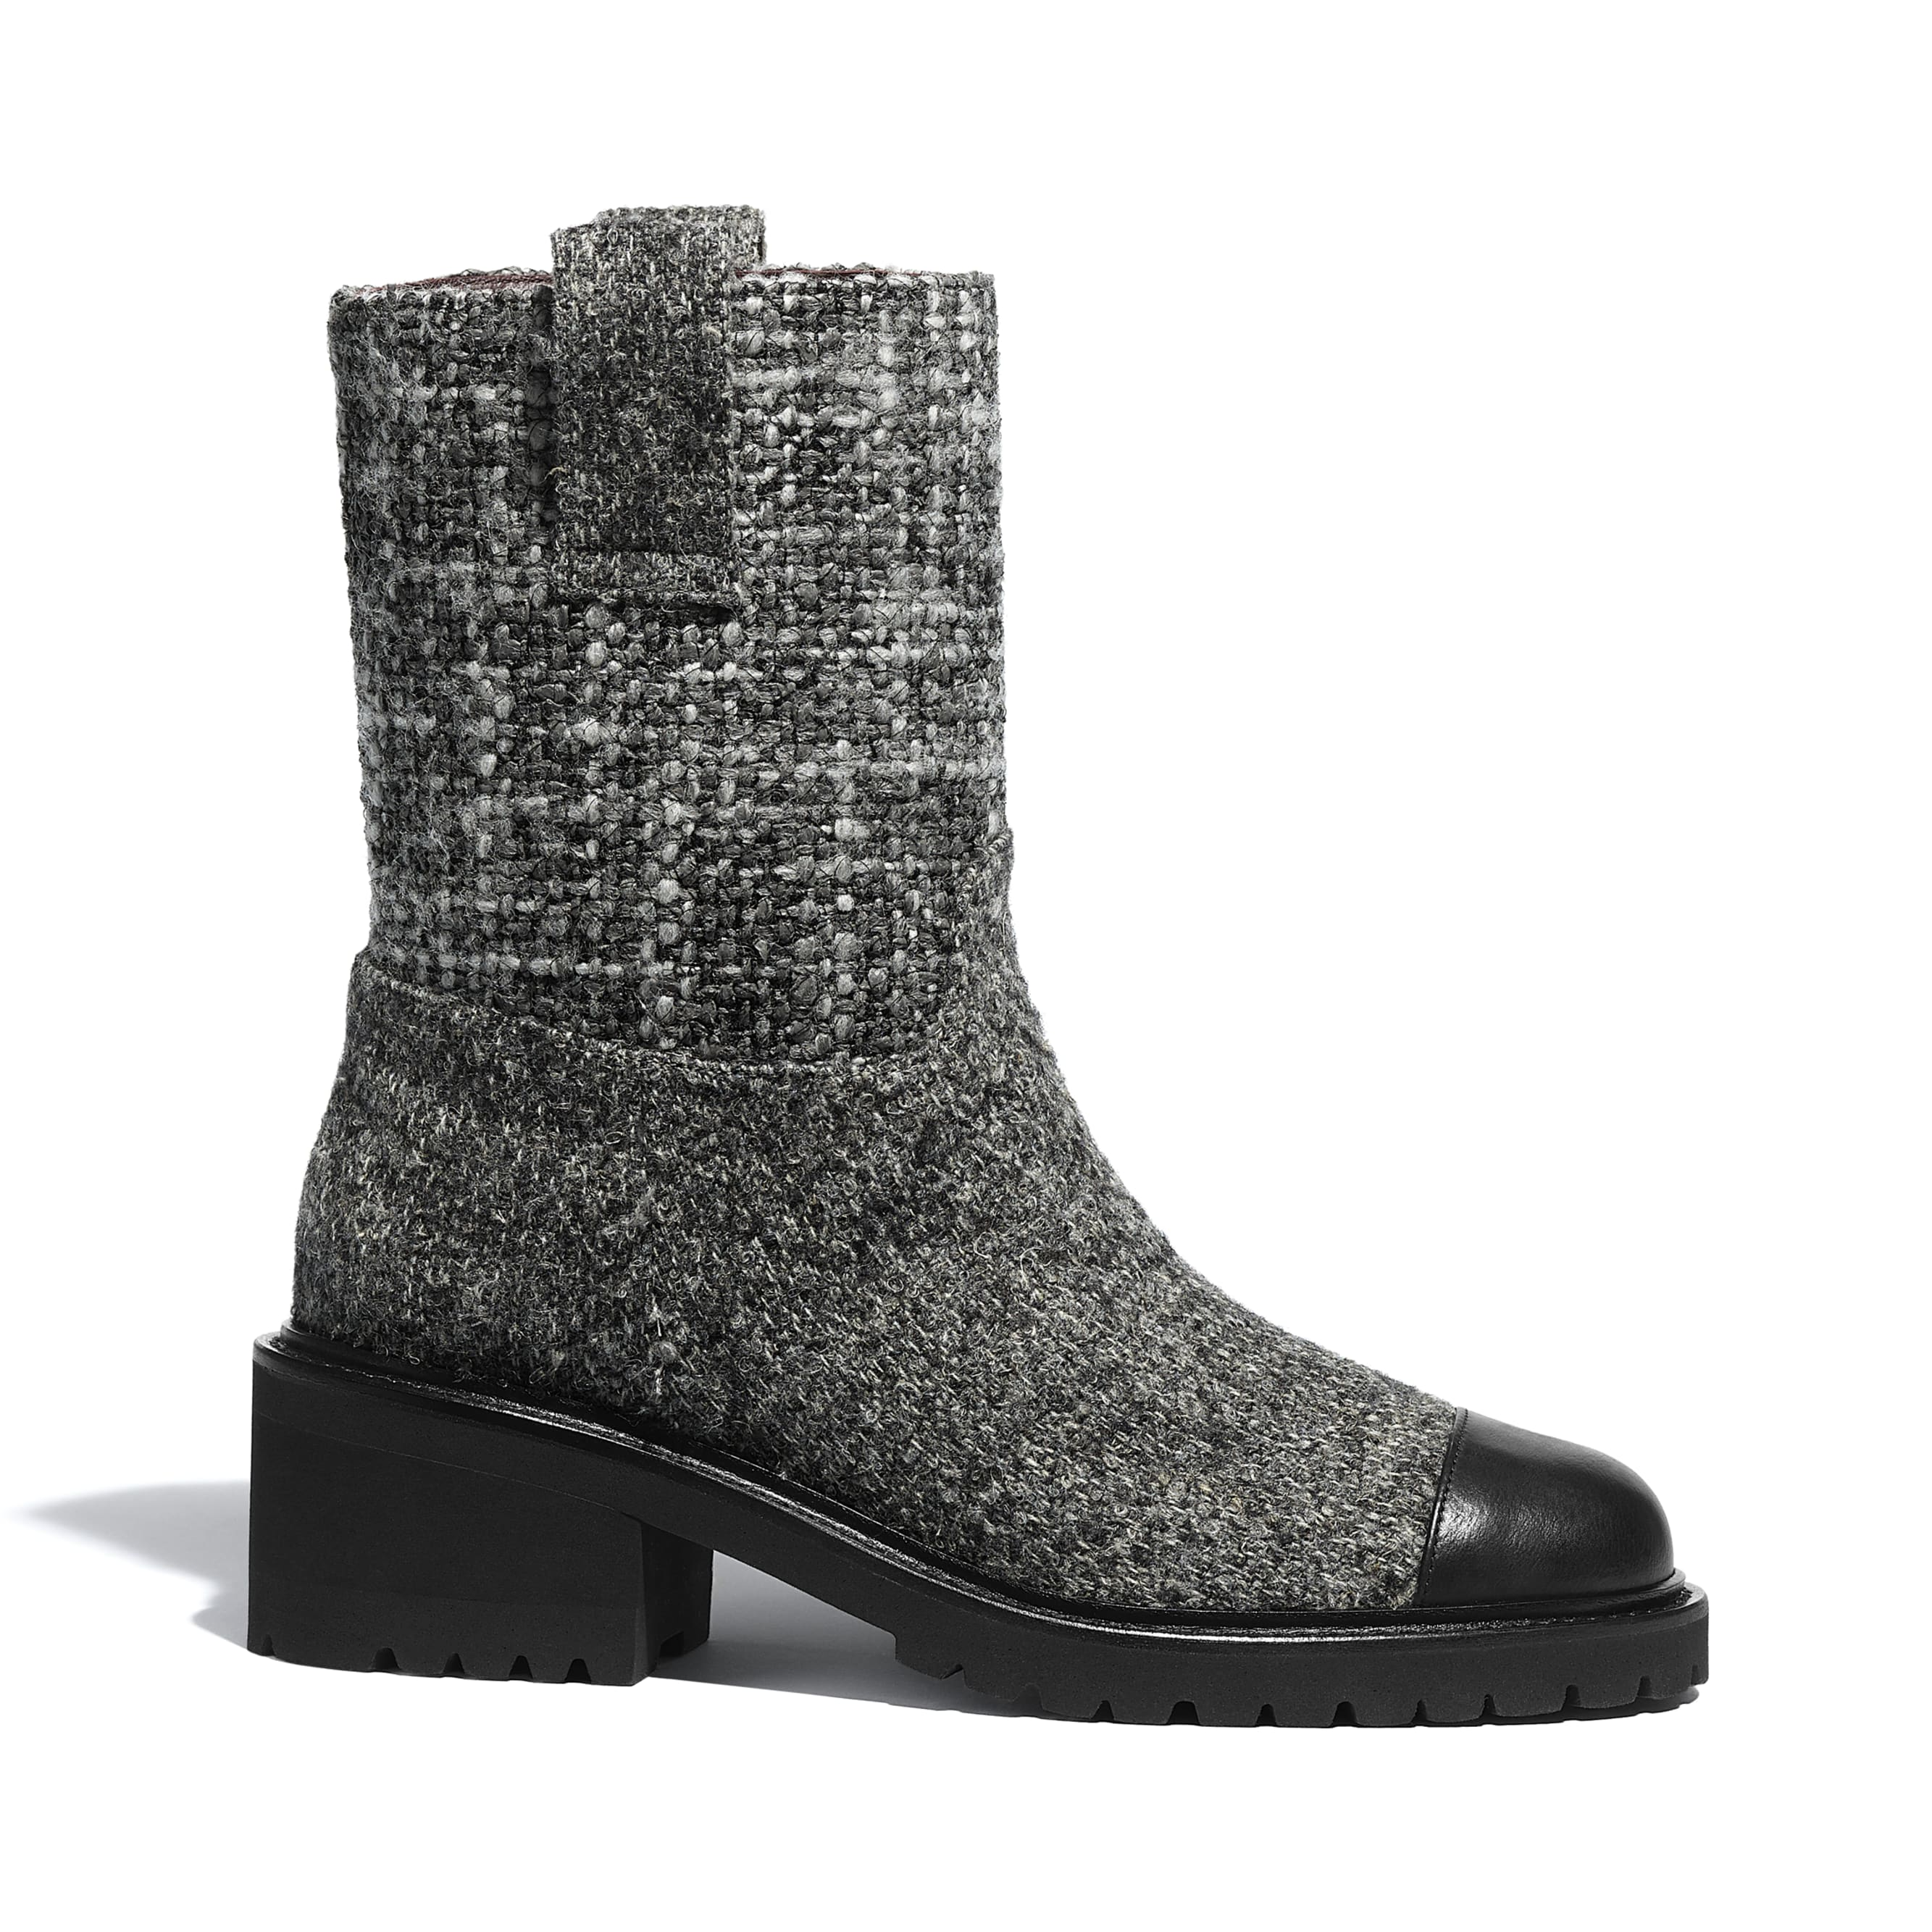 Ankle Boots - Grey & Black - Tweed & Calfskin - CHANEL - Default view - see standard sized version